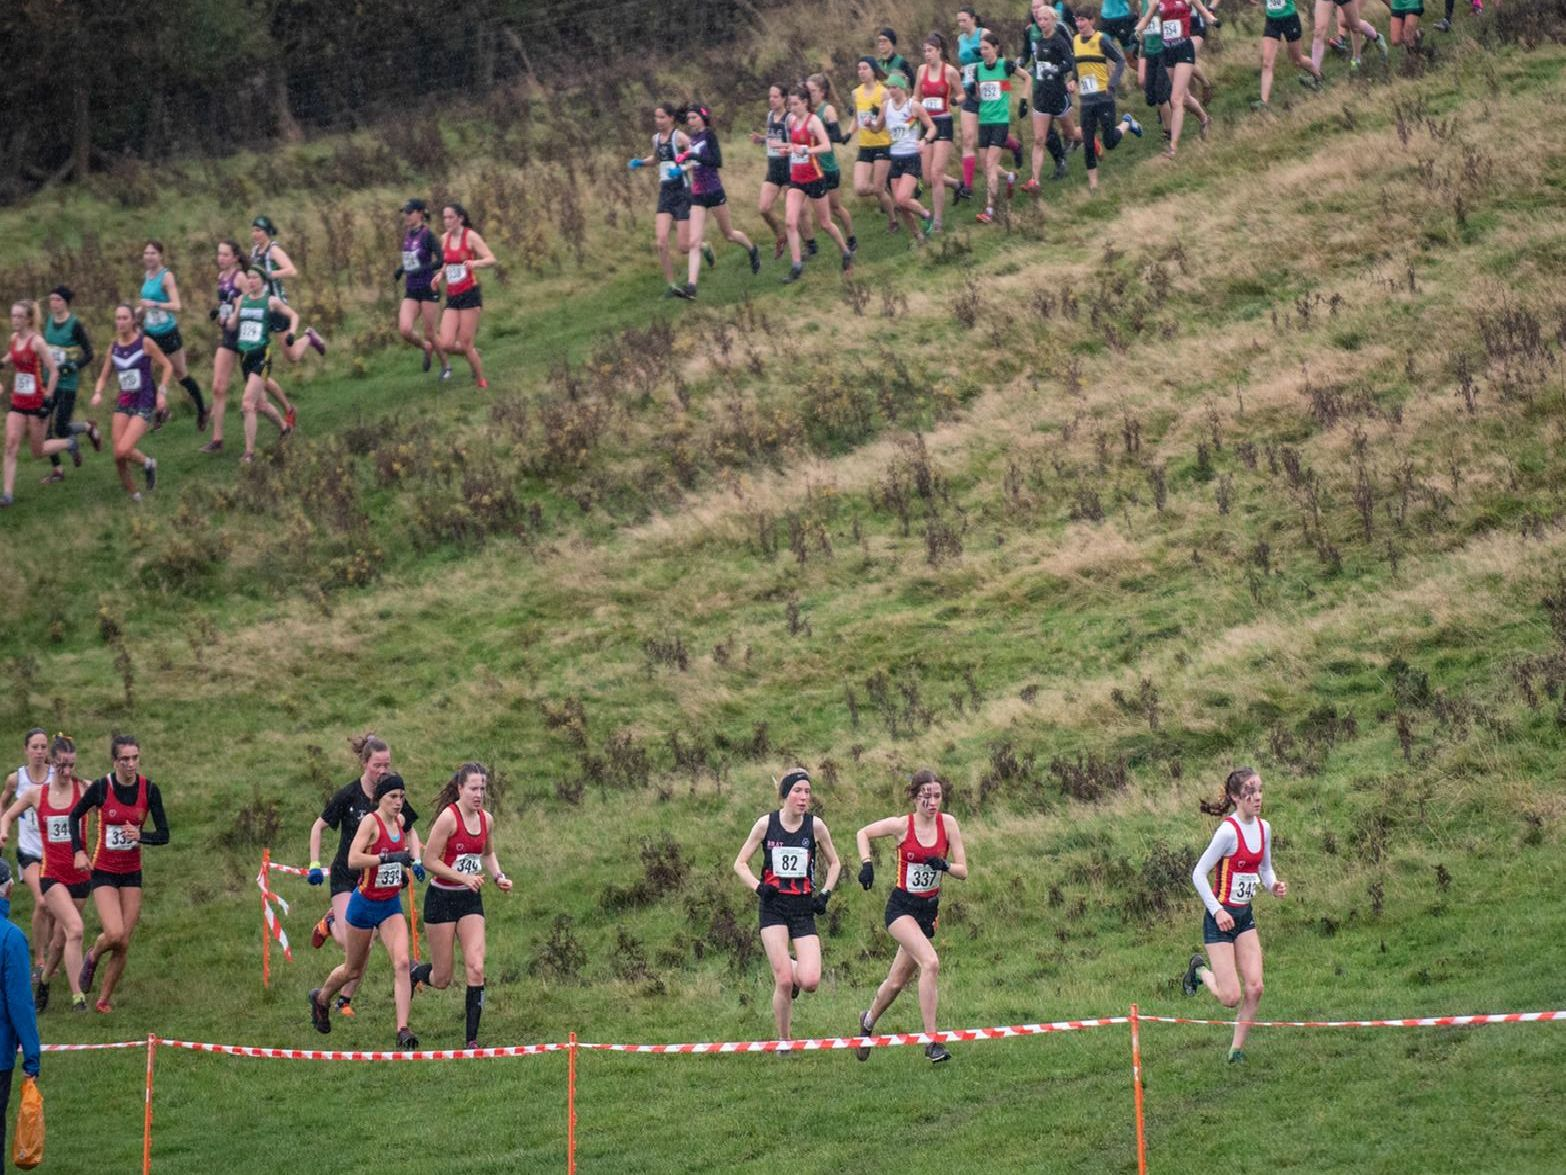 Lou Smith captures the action at Burton Dassett Country Park.